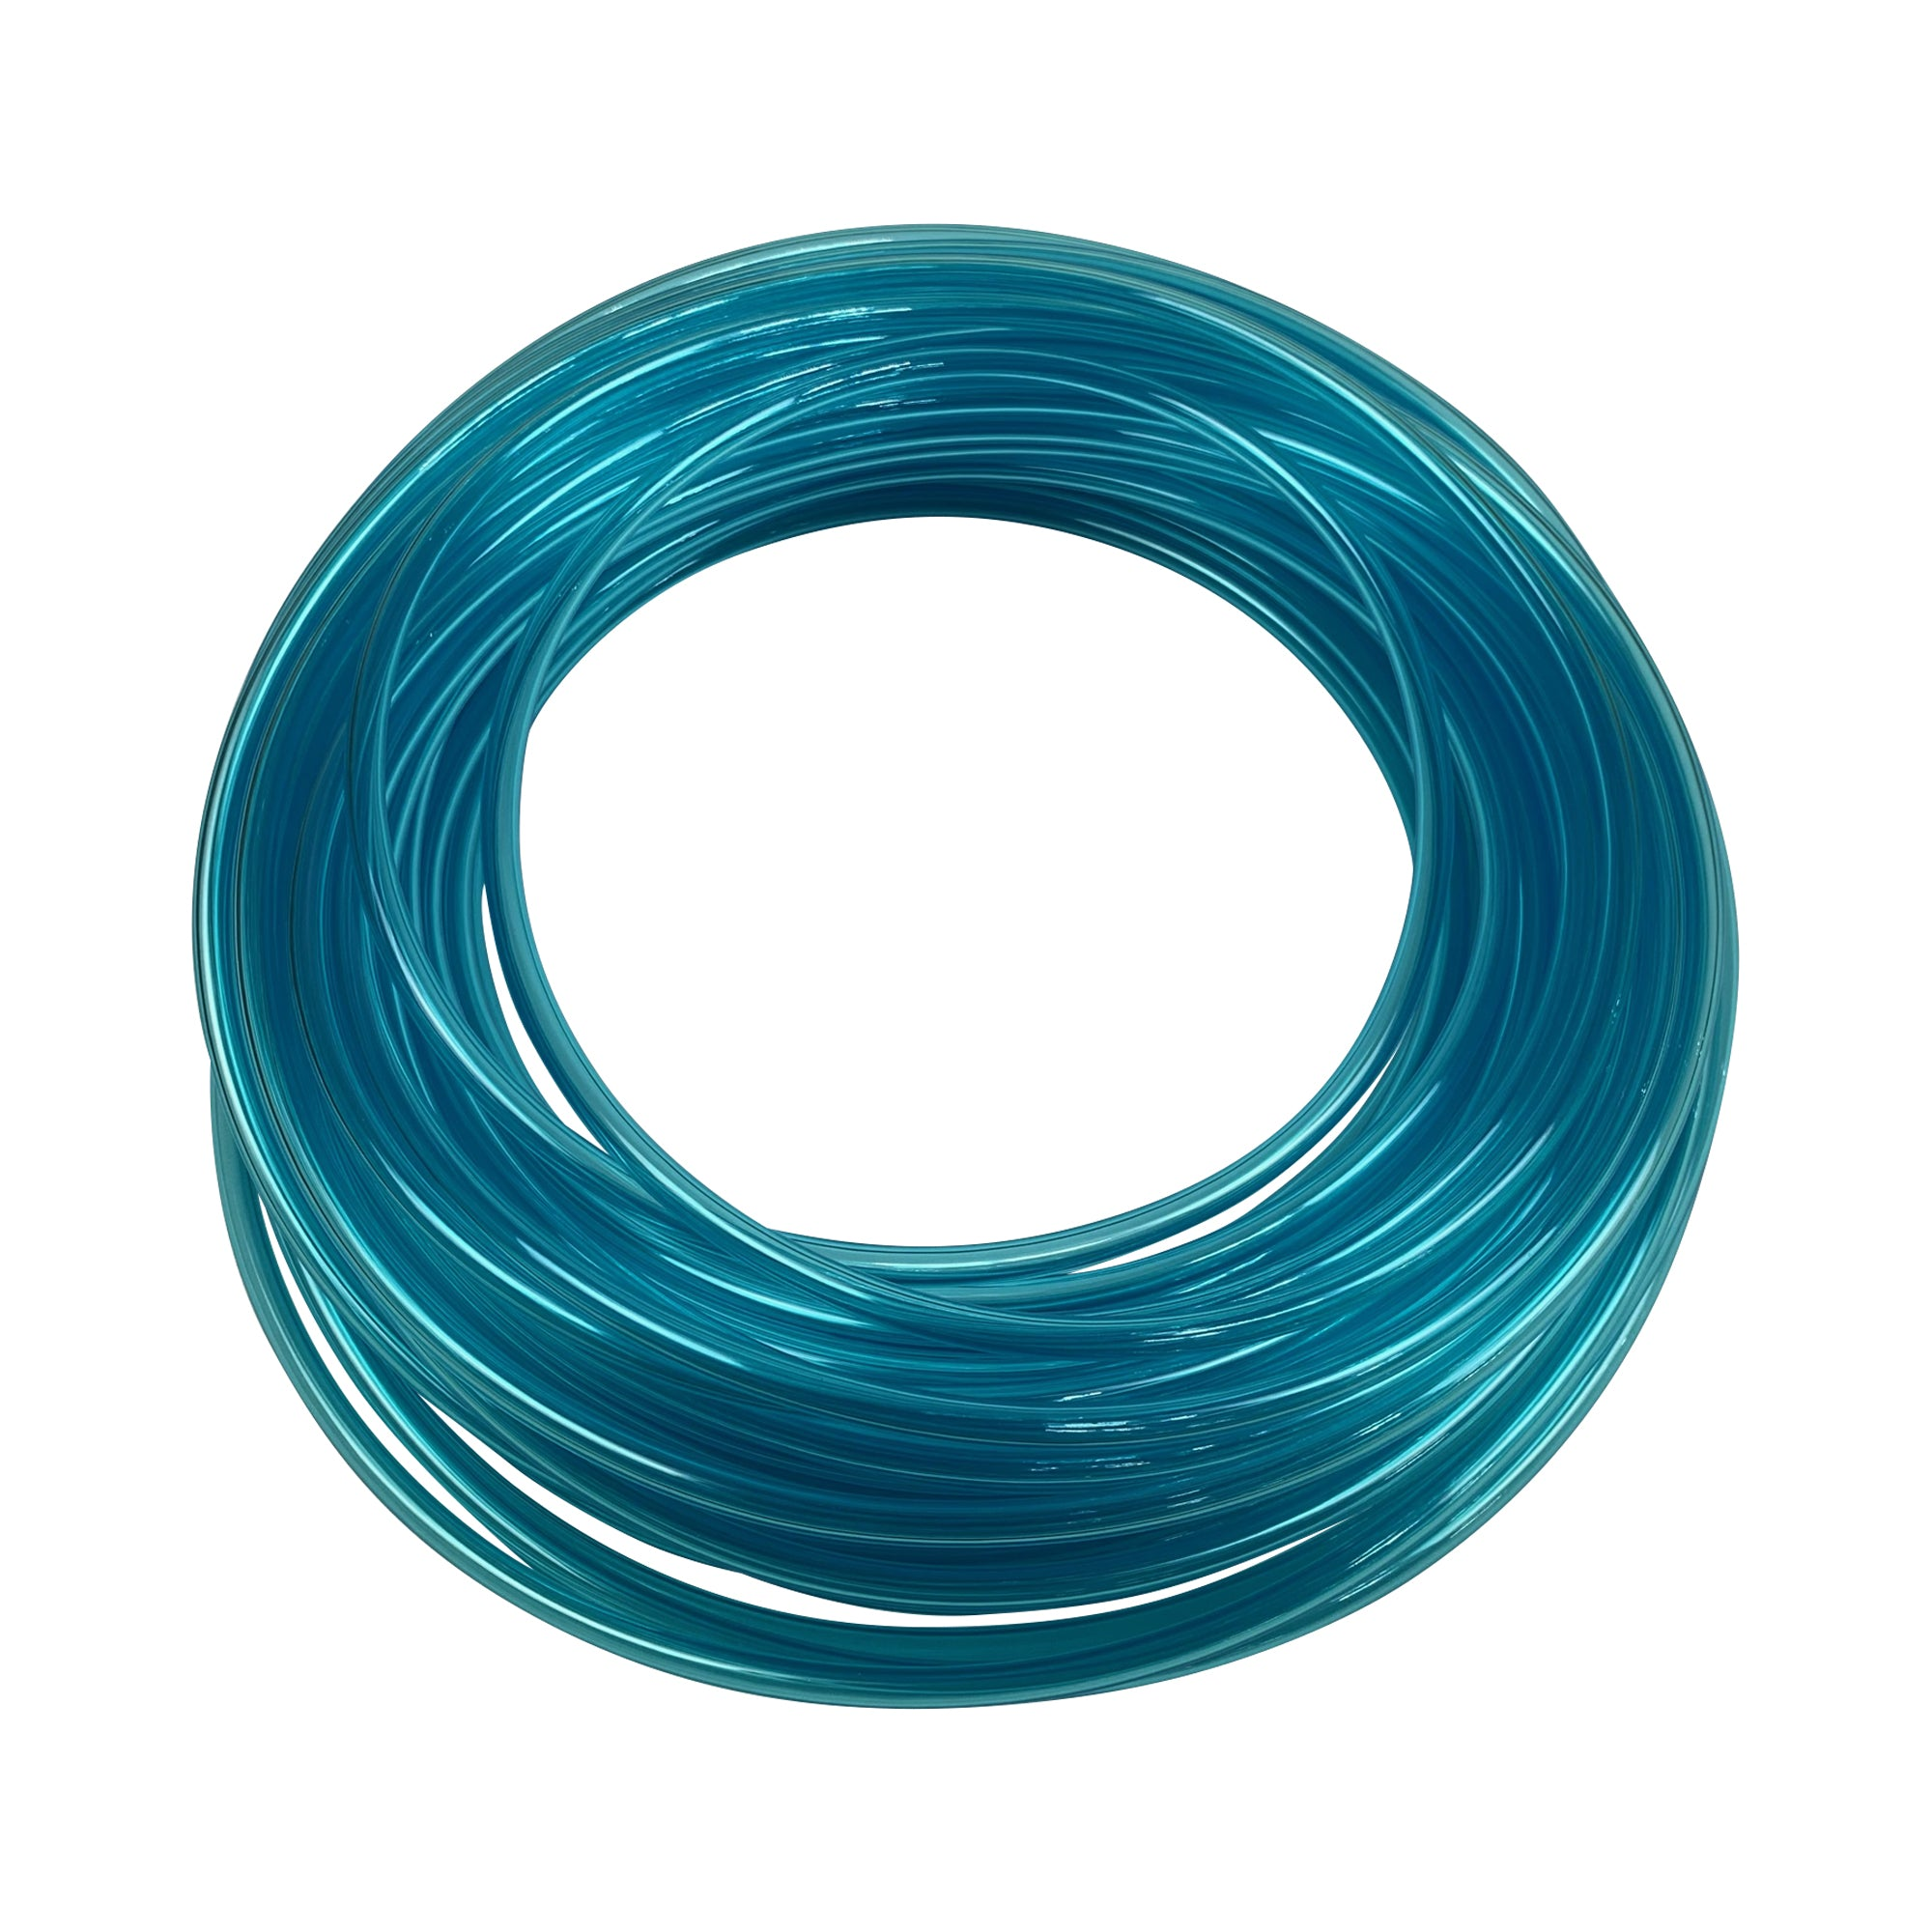 Clear blue tubing compatible for air